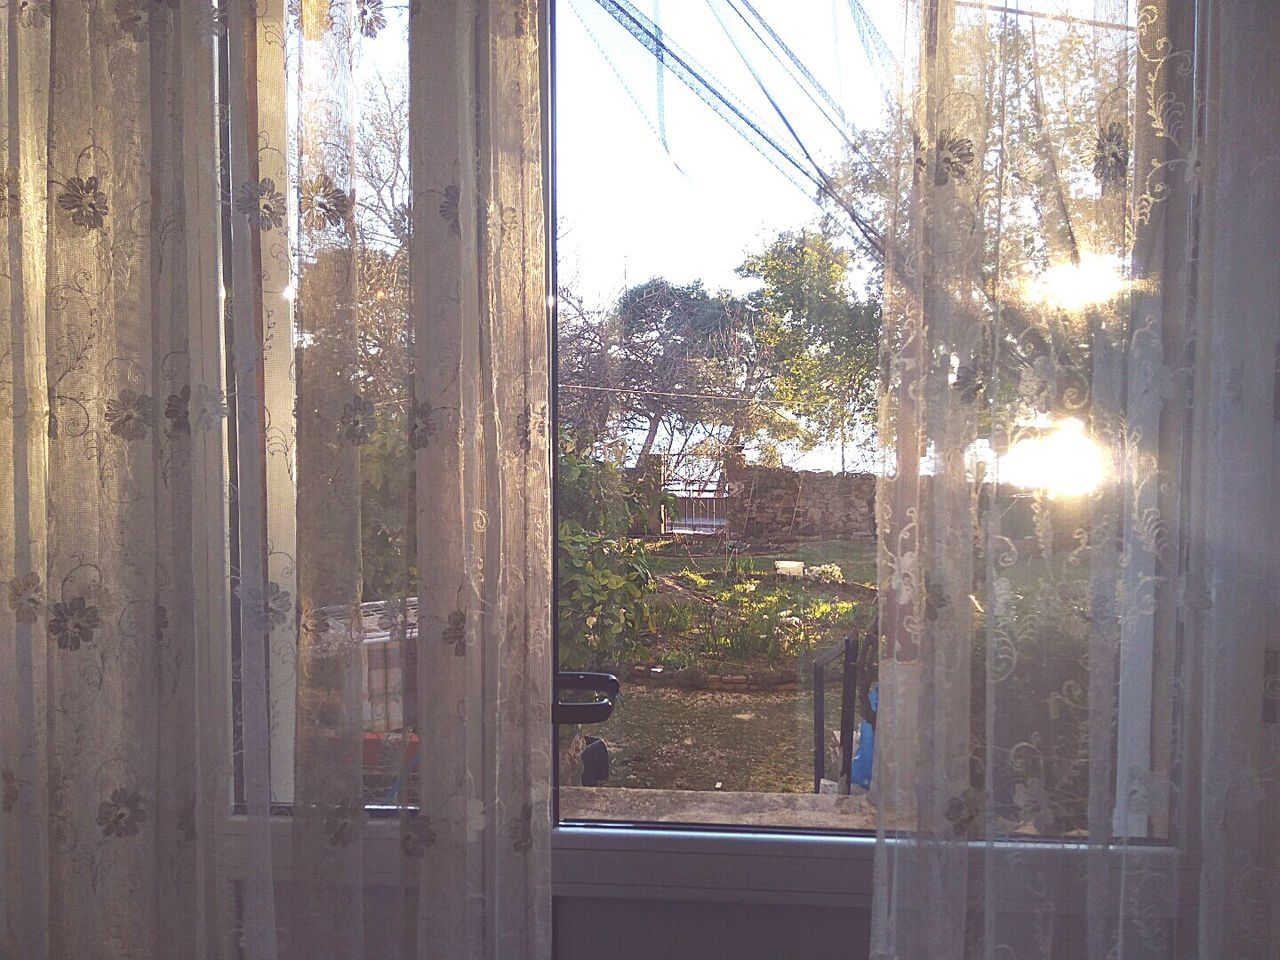 window, day, curtain, sunlight, no people, tree, indoors, drapes, nature, sky, close-up